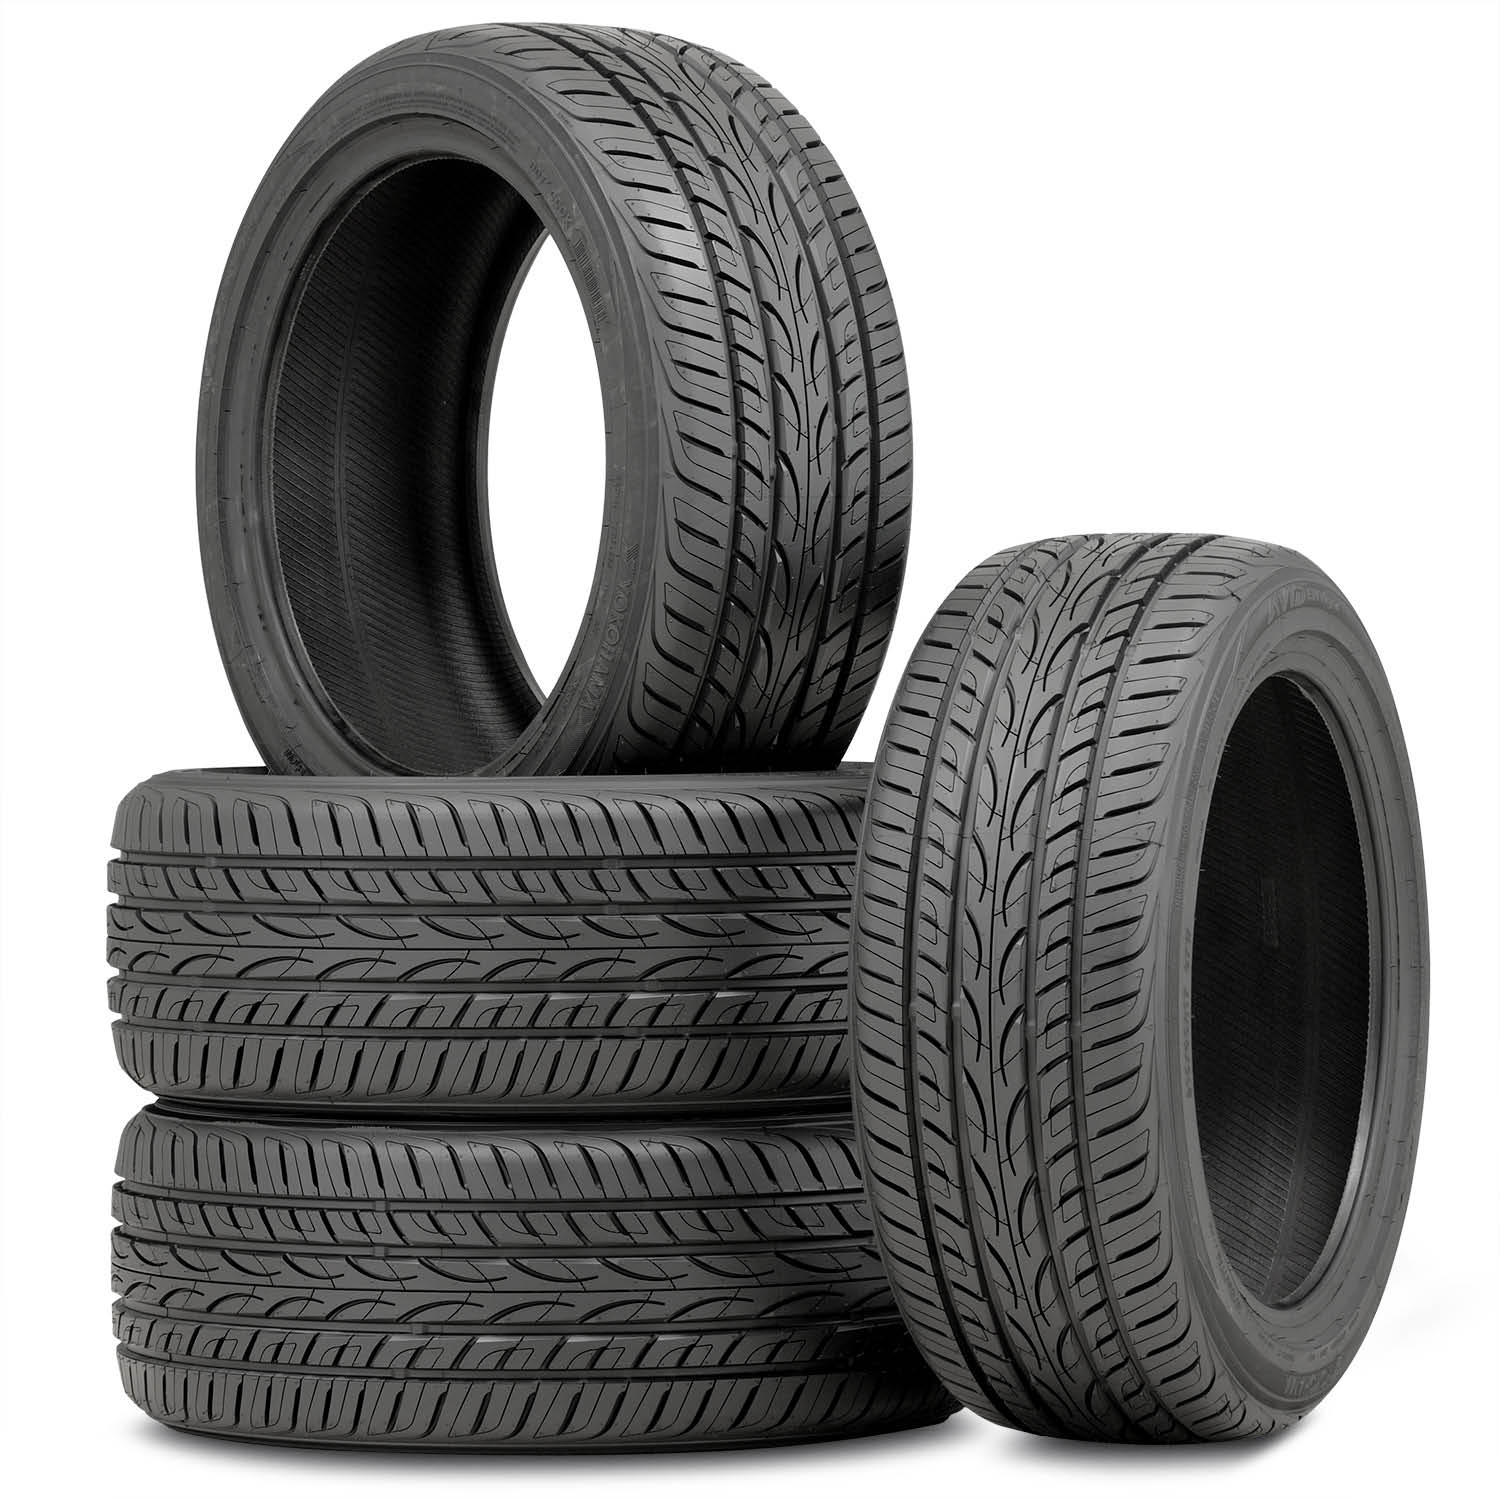 We stock Goodyear, Kelly and Dunlop tires for sale to fit most cars and trucks at Cartex